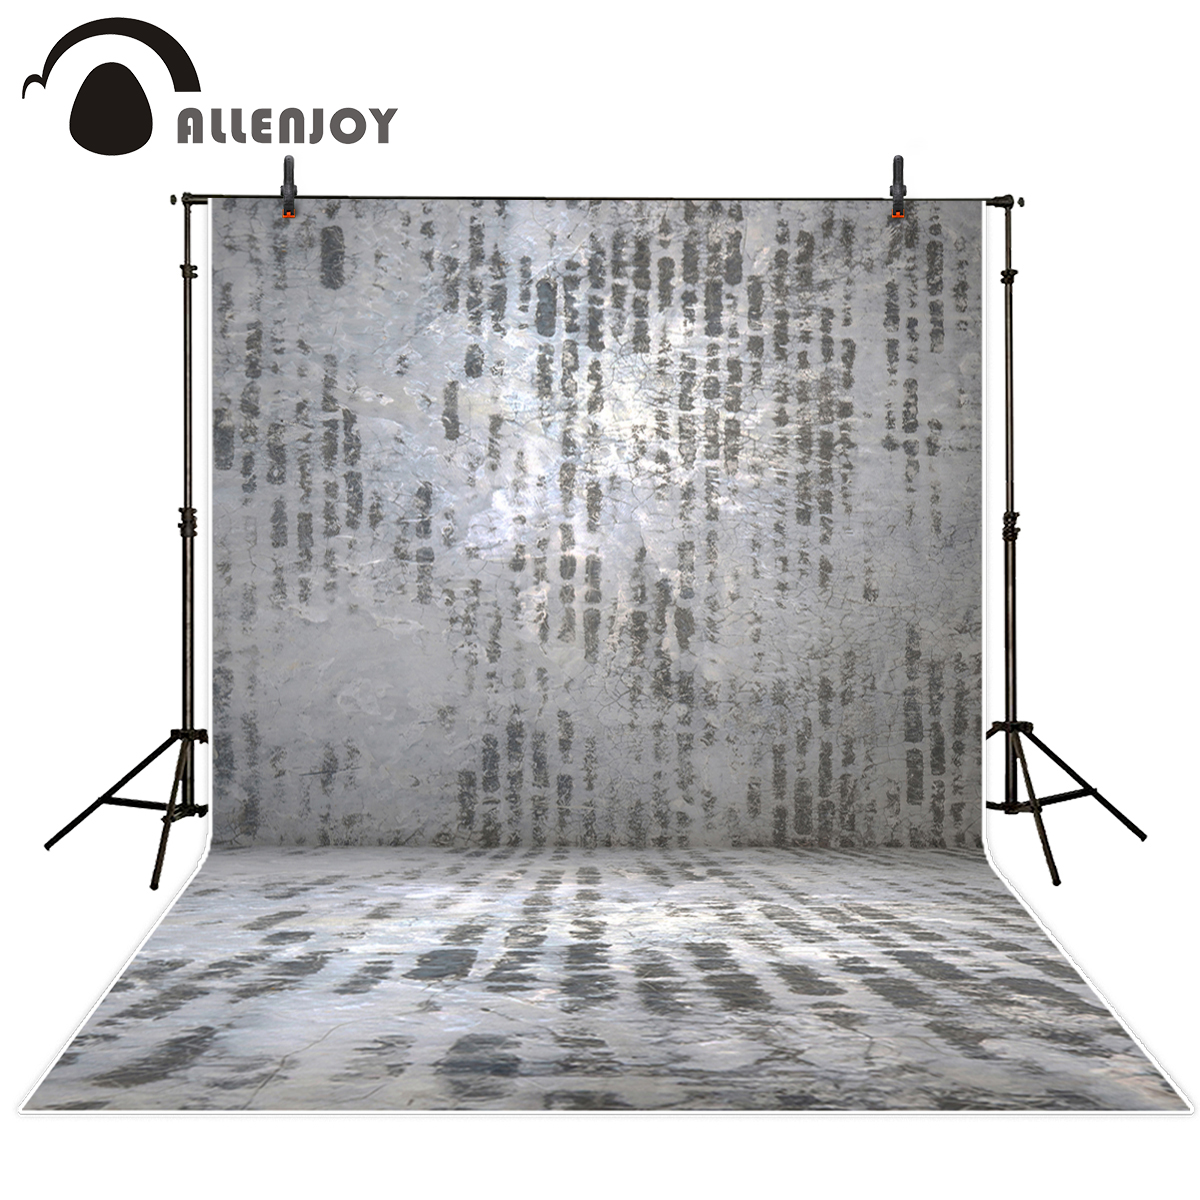 Allenjoy photography backdrops white and gray brick wall brick floor backgrounds for photo studio photography studio backgrounds allenjoy photography backdrops white and gray brick wall brick floor backgrounds for photo studio photography studio backgrounds